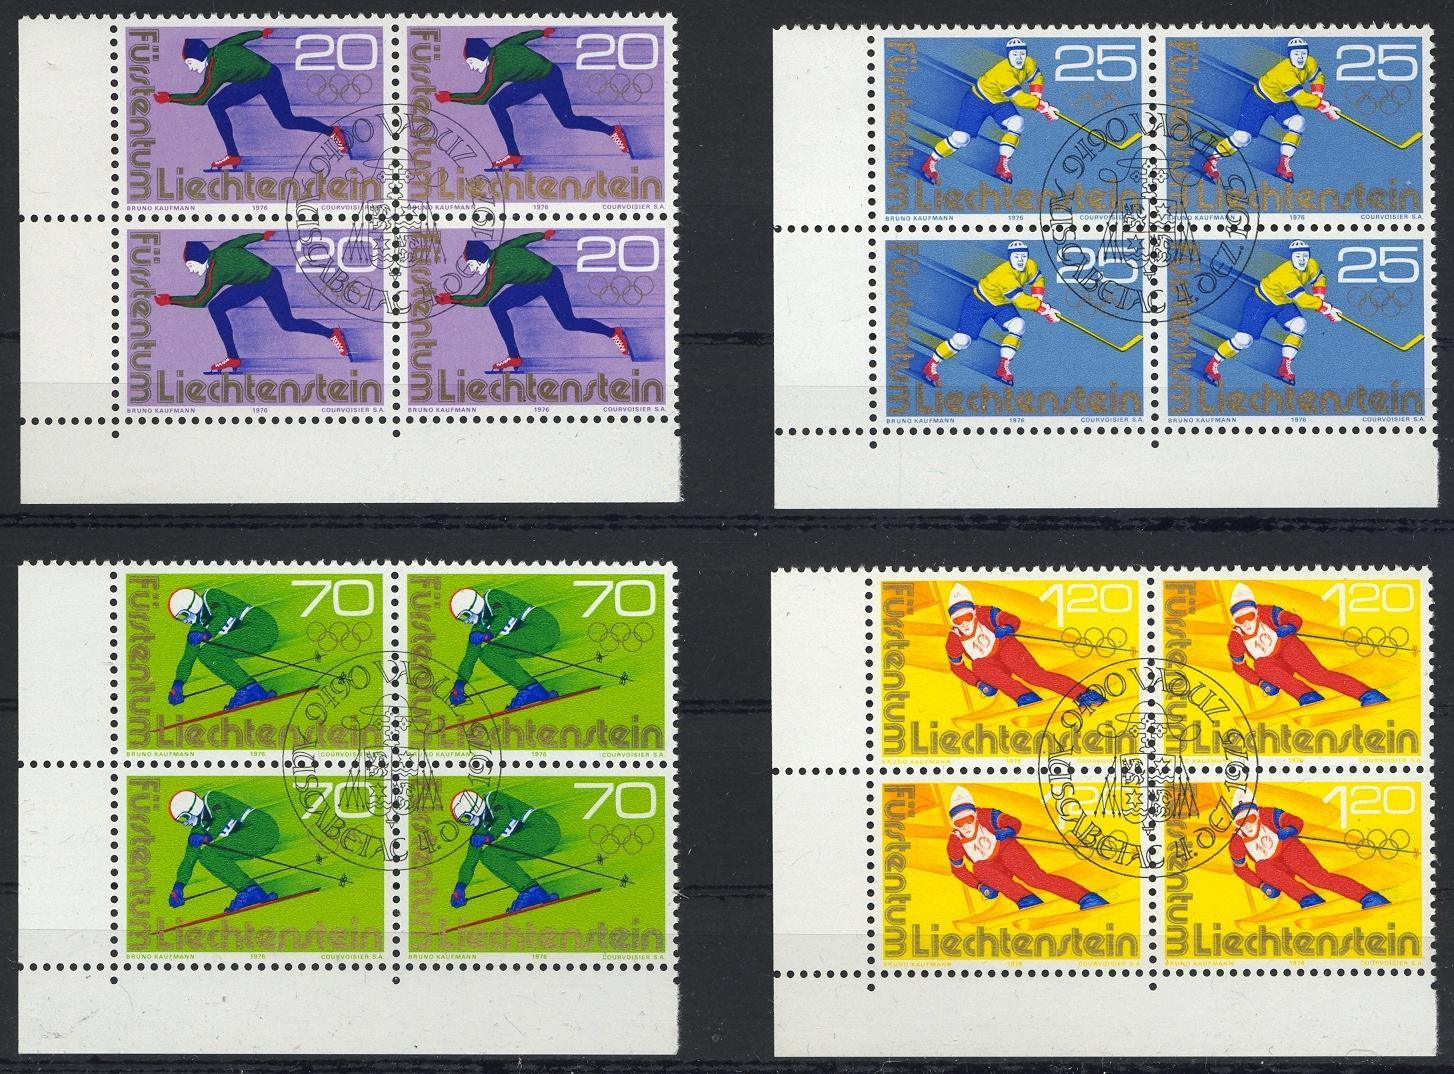 Stamps with Olympic Games, Skating, Icehockey, Ski from Liechtenstein (image for product #032235)